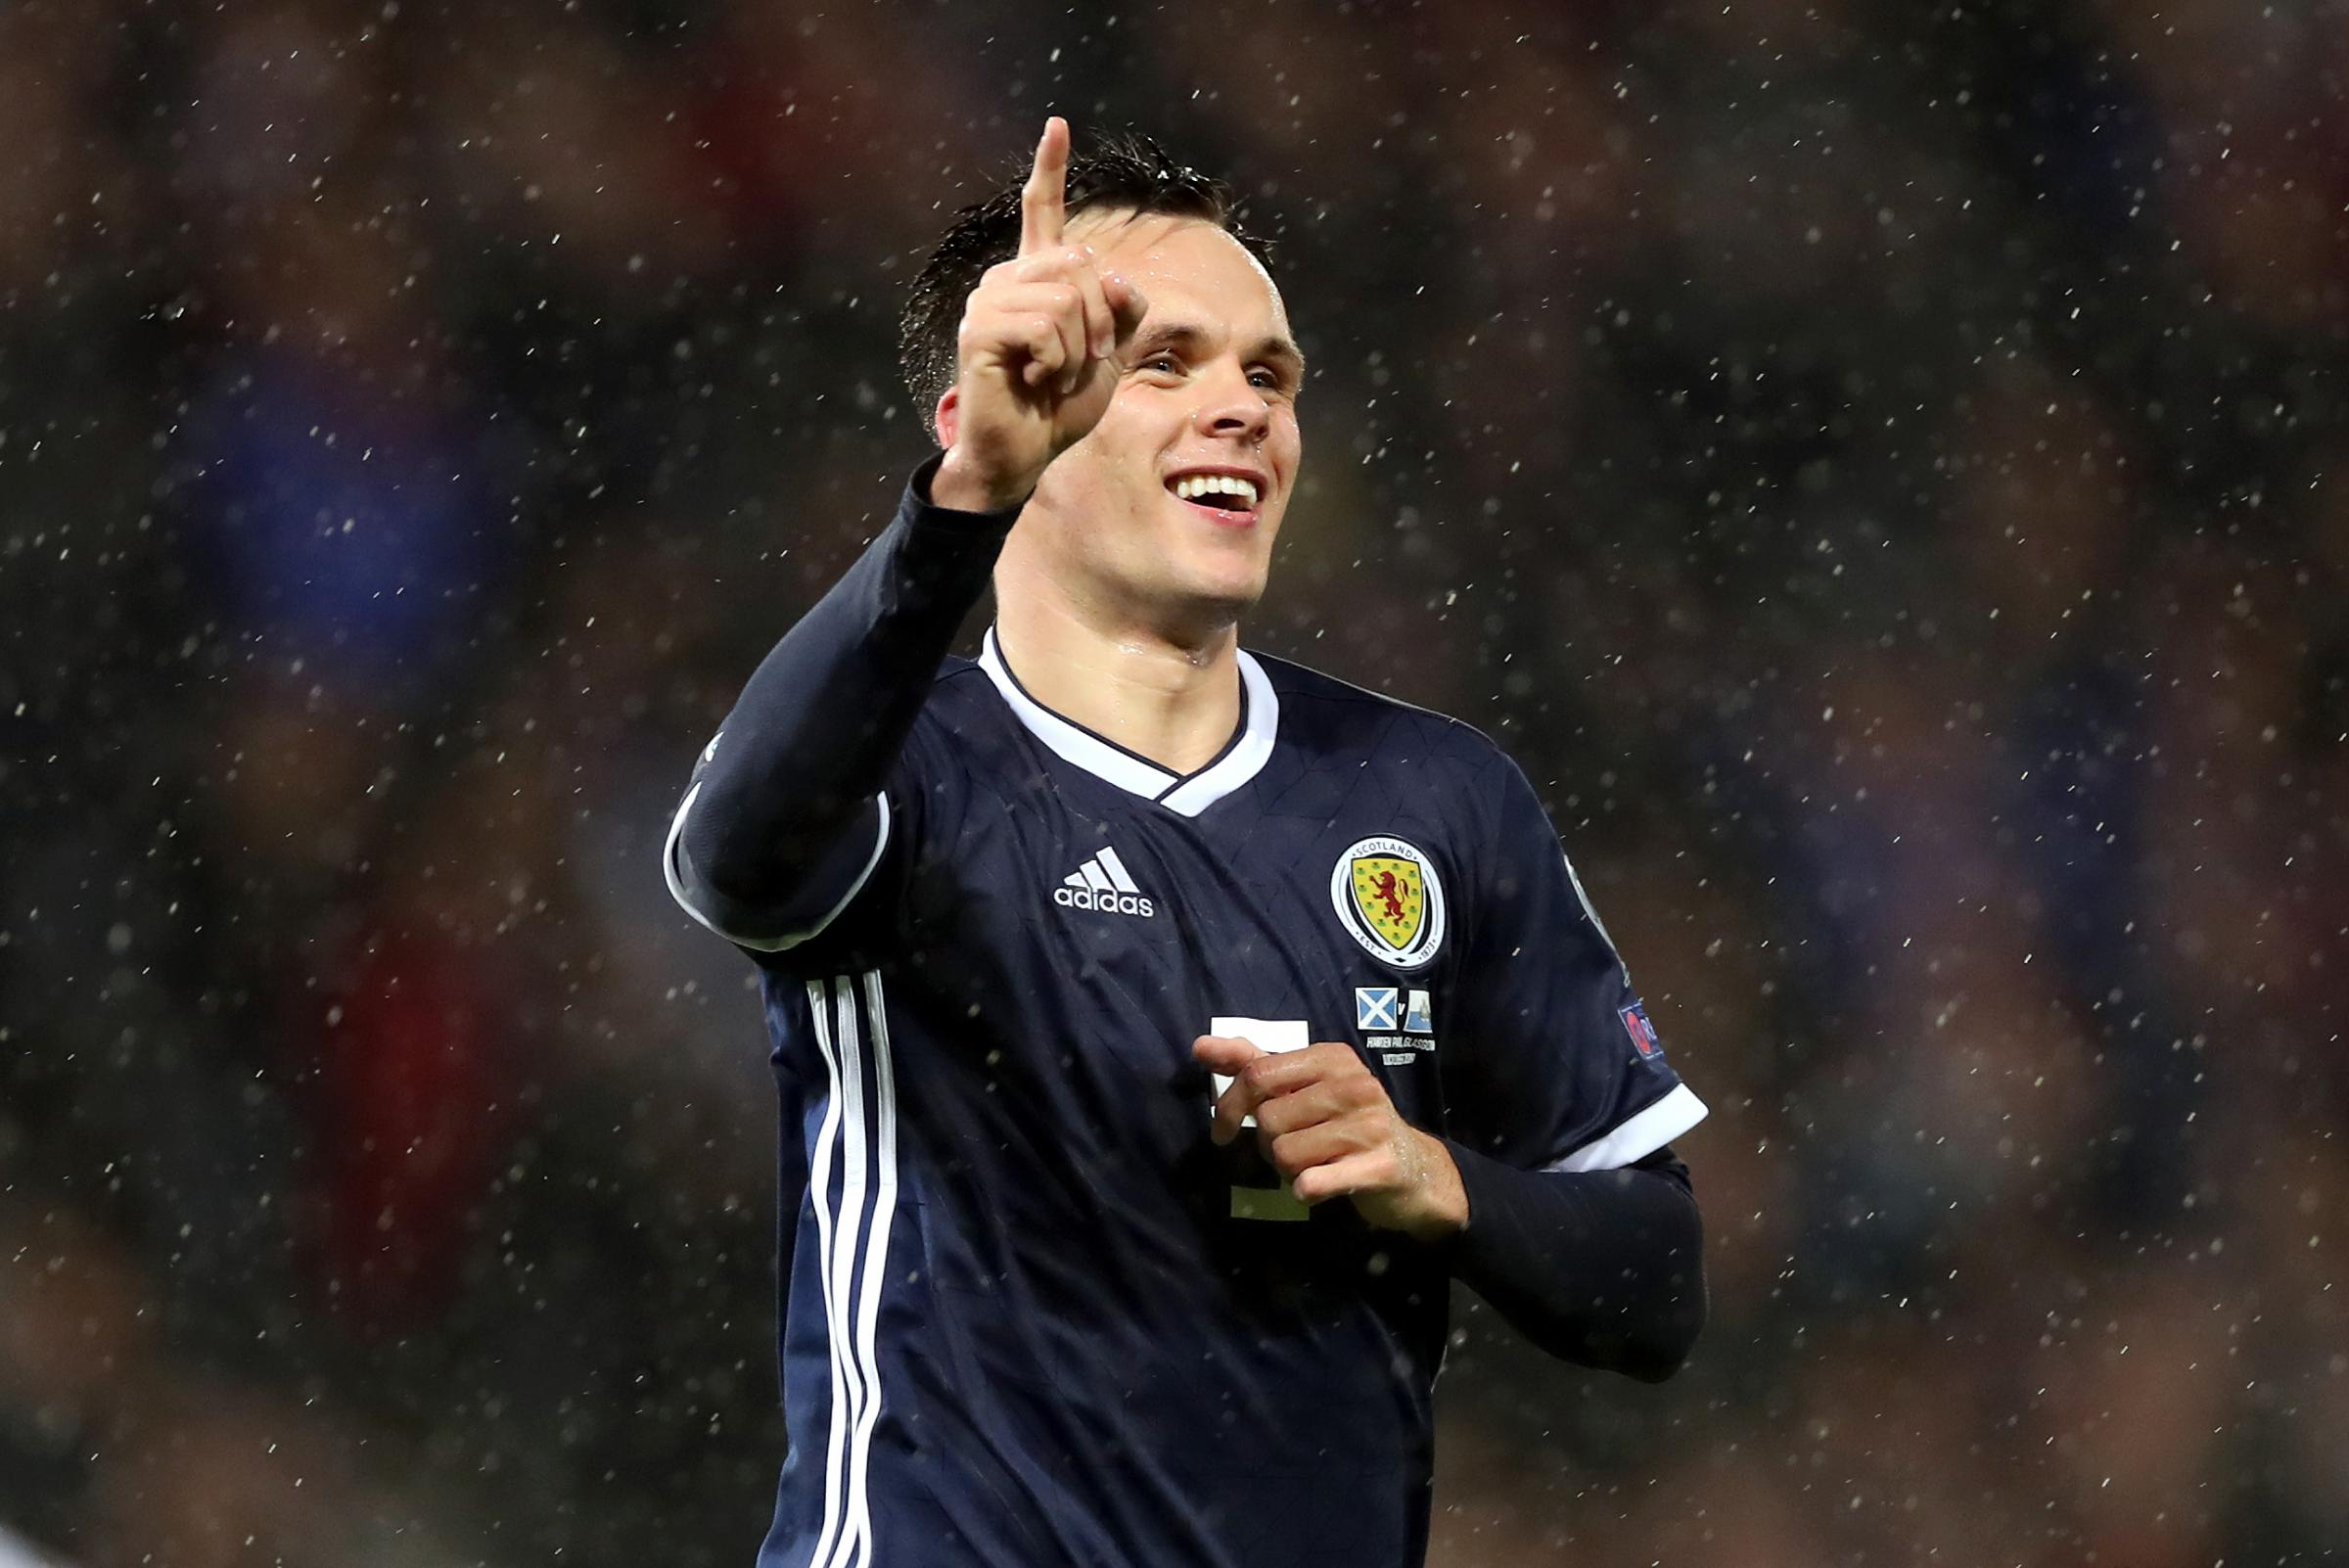 Lawrence Shankland vows to keep up goal scoring form in bid to earn Nations League call-up